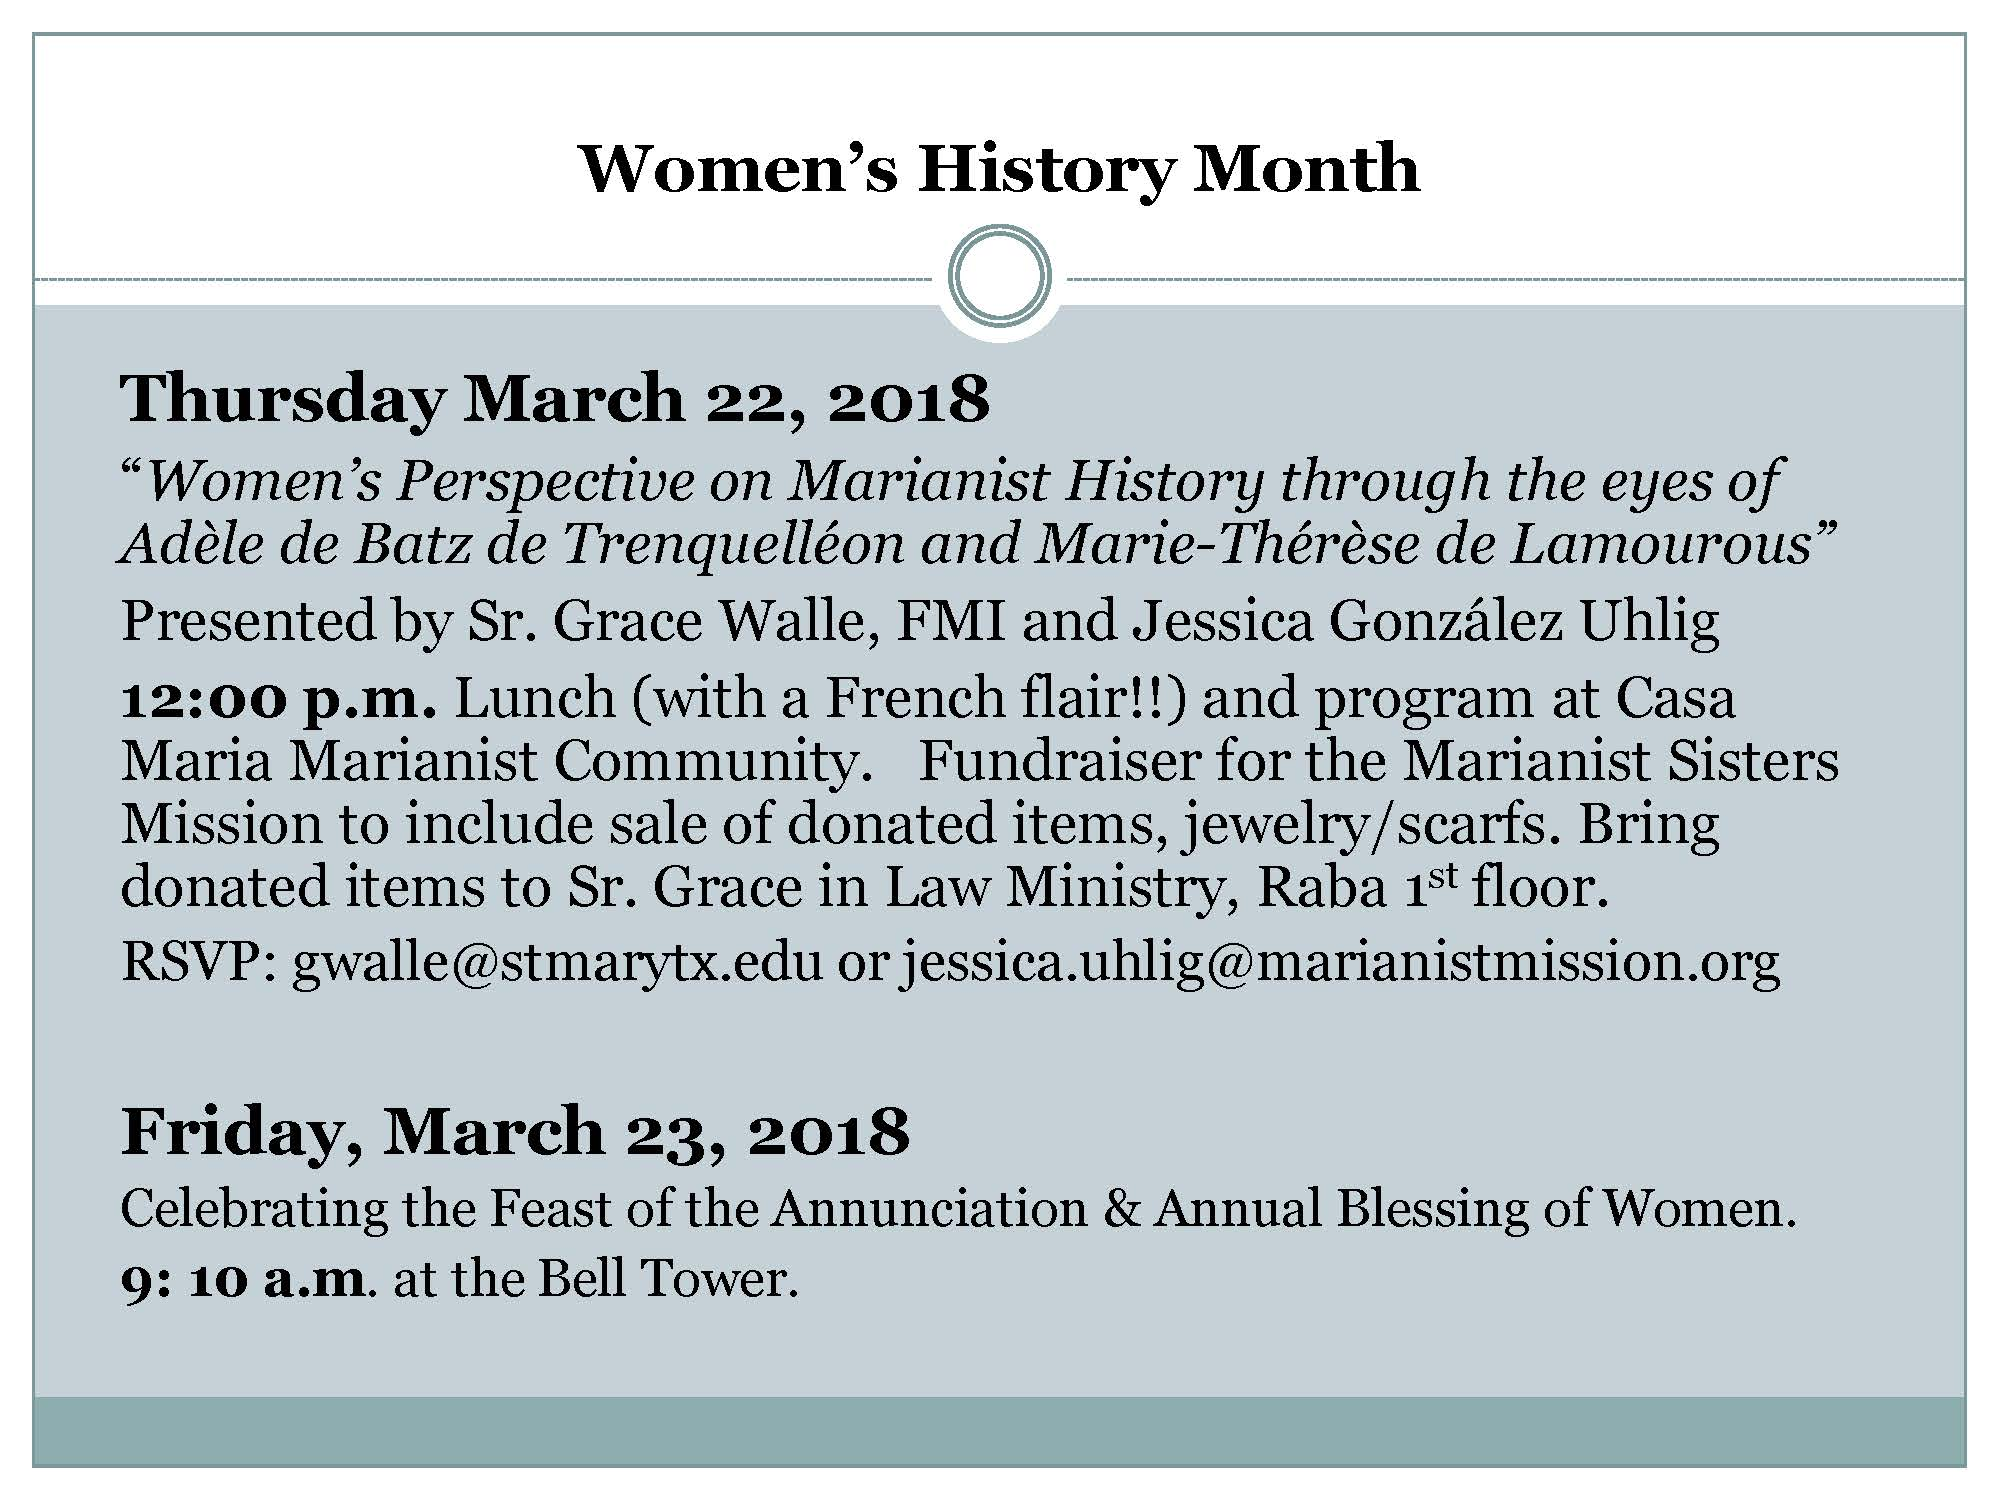 Flyer for A Woman's Perspective on the Marianist Story